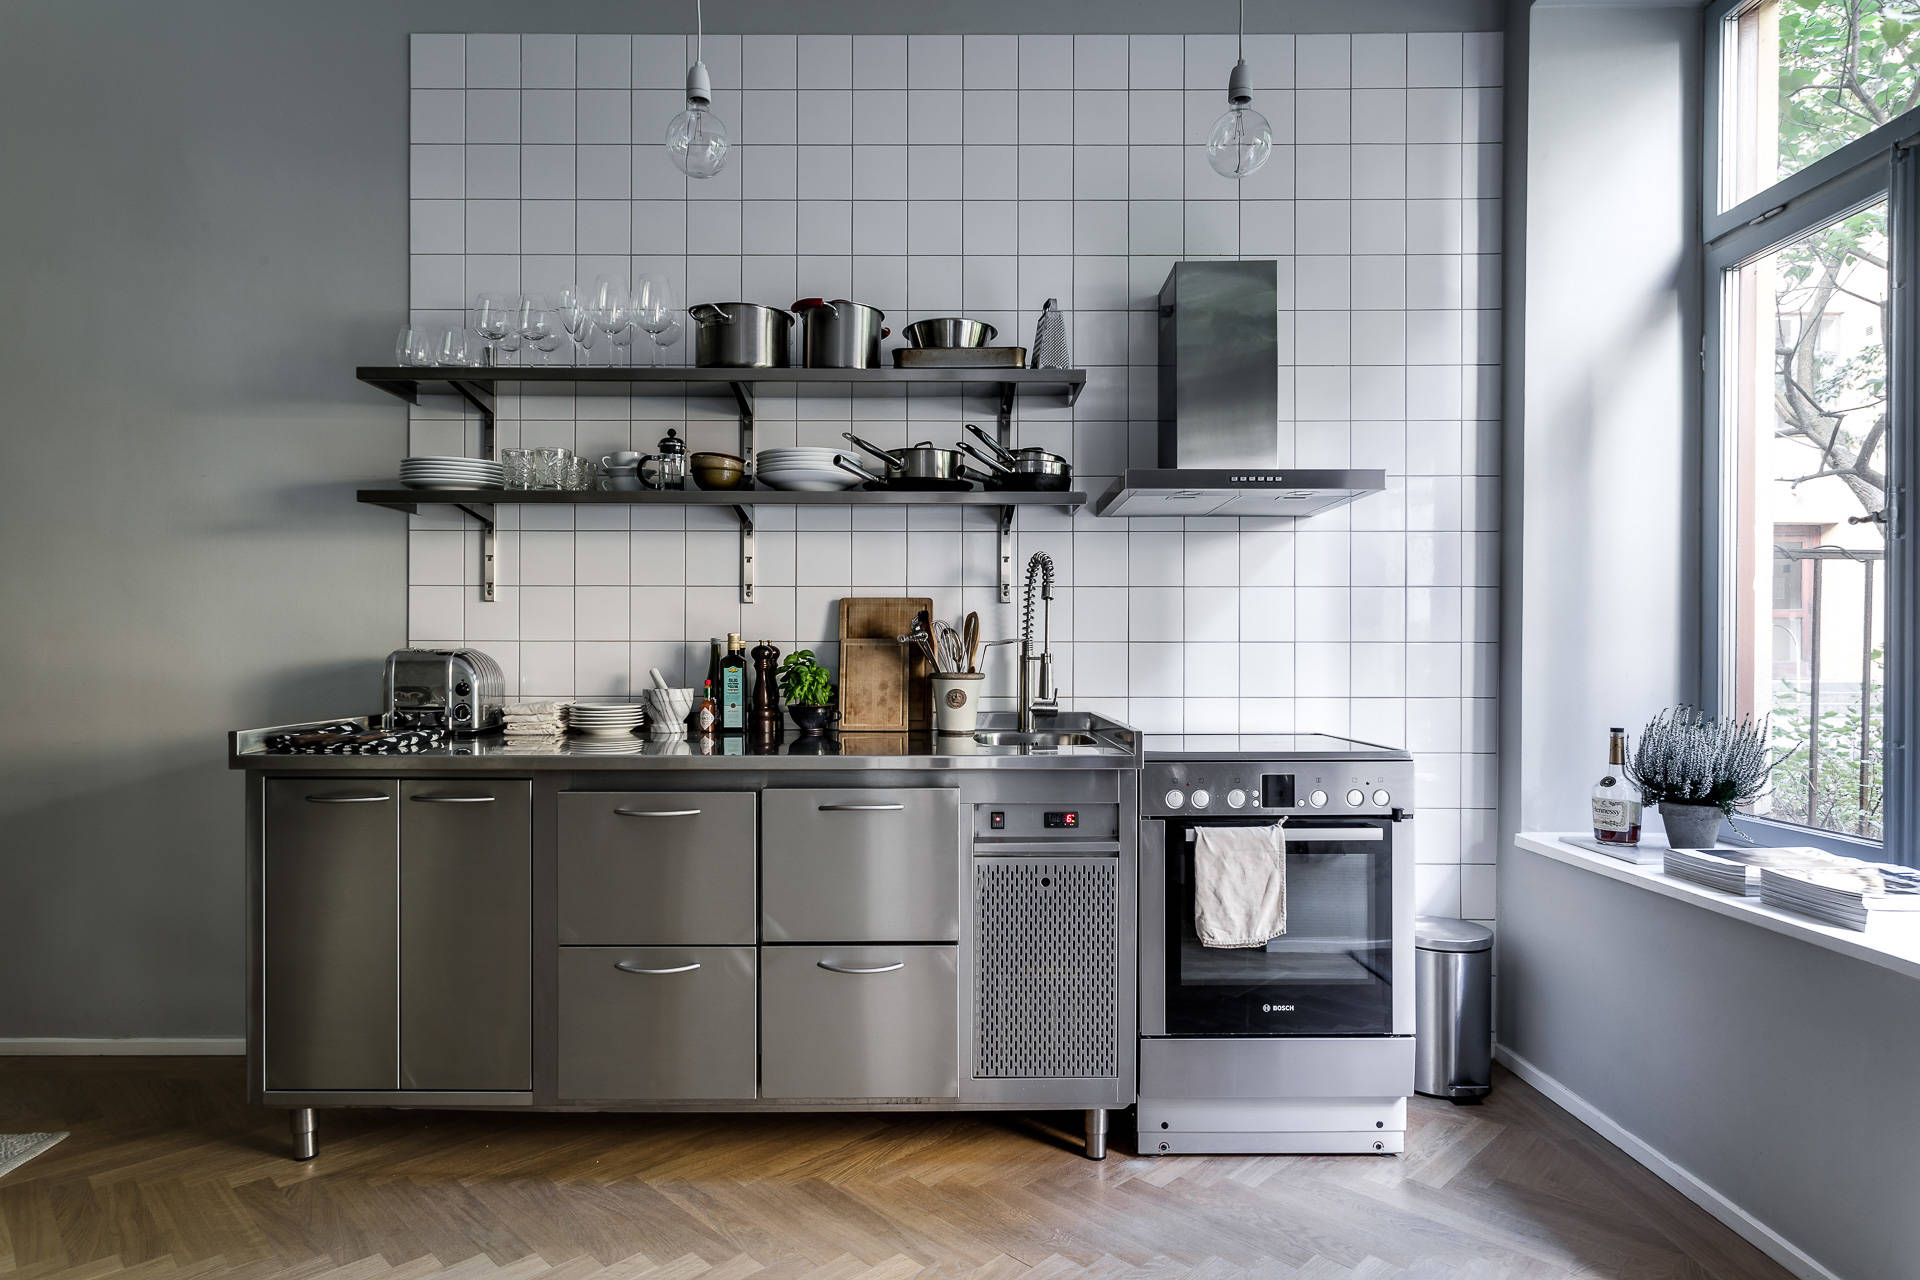 cuisine inox Archives - PLANETE DECO a homes world